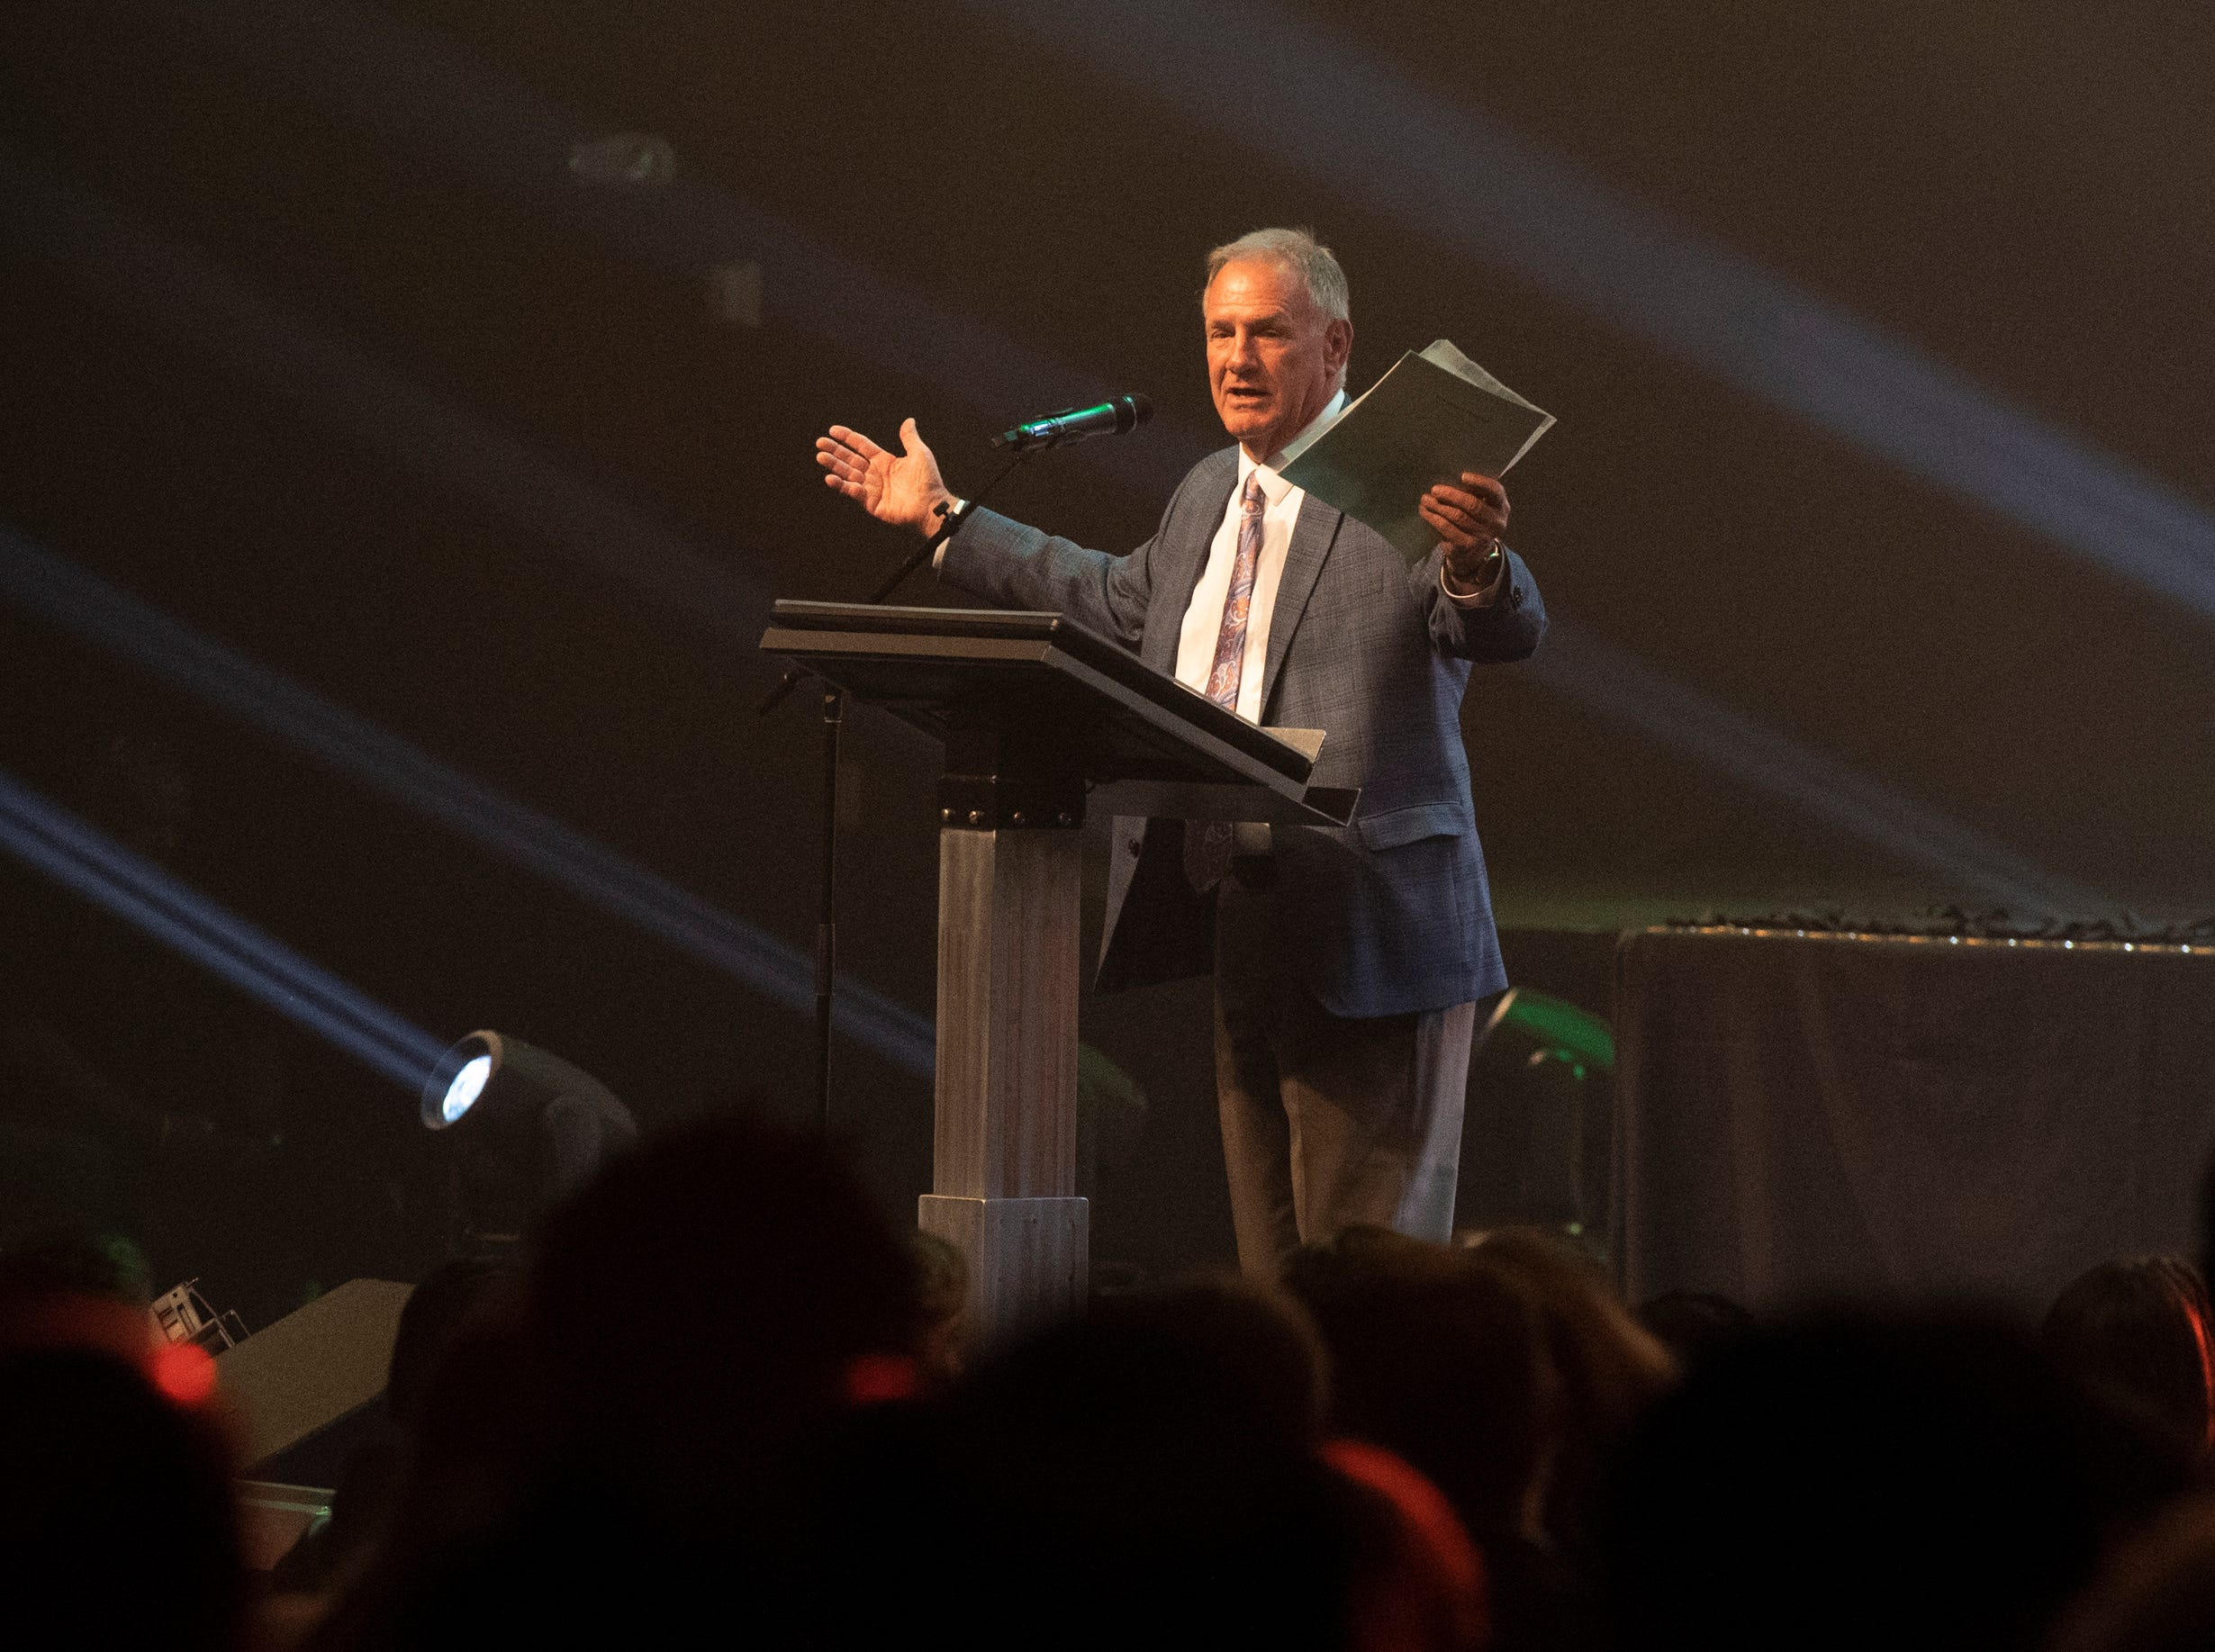 Greg Blatt, executive director for Coaches 4 Character, speaks to the crowd gathered for the Coaches 4 Character ACE Awards held at Relentless Church Wednesday, May 15, 2019.